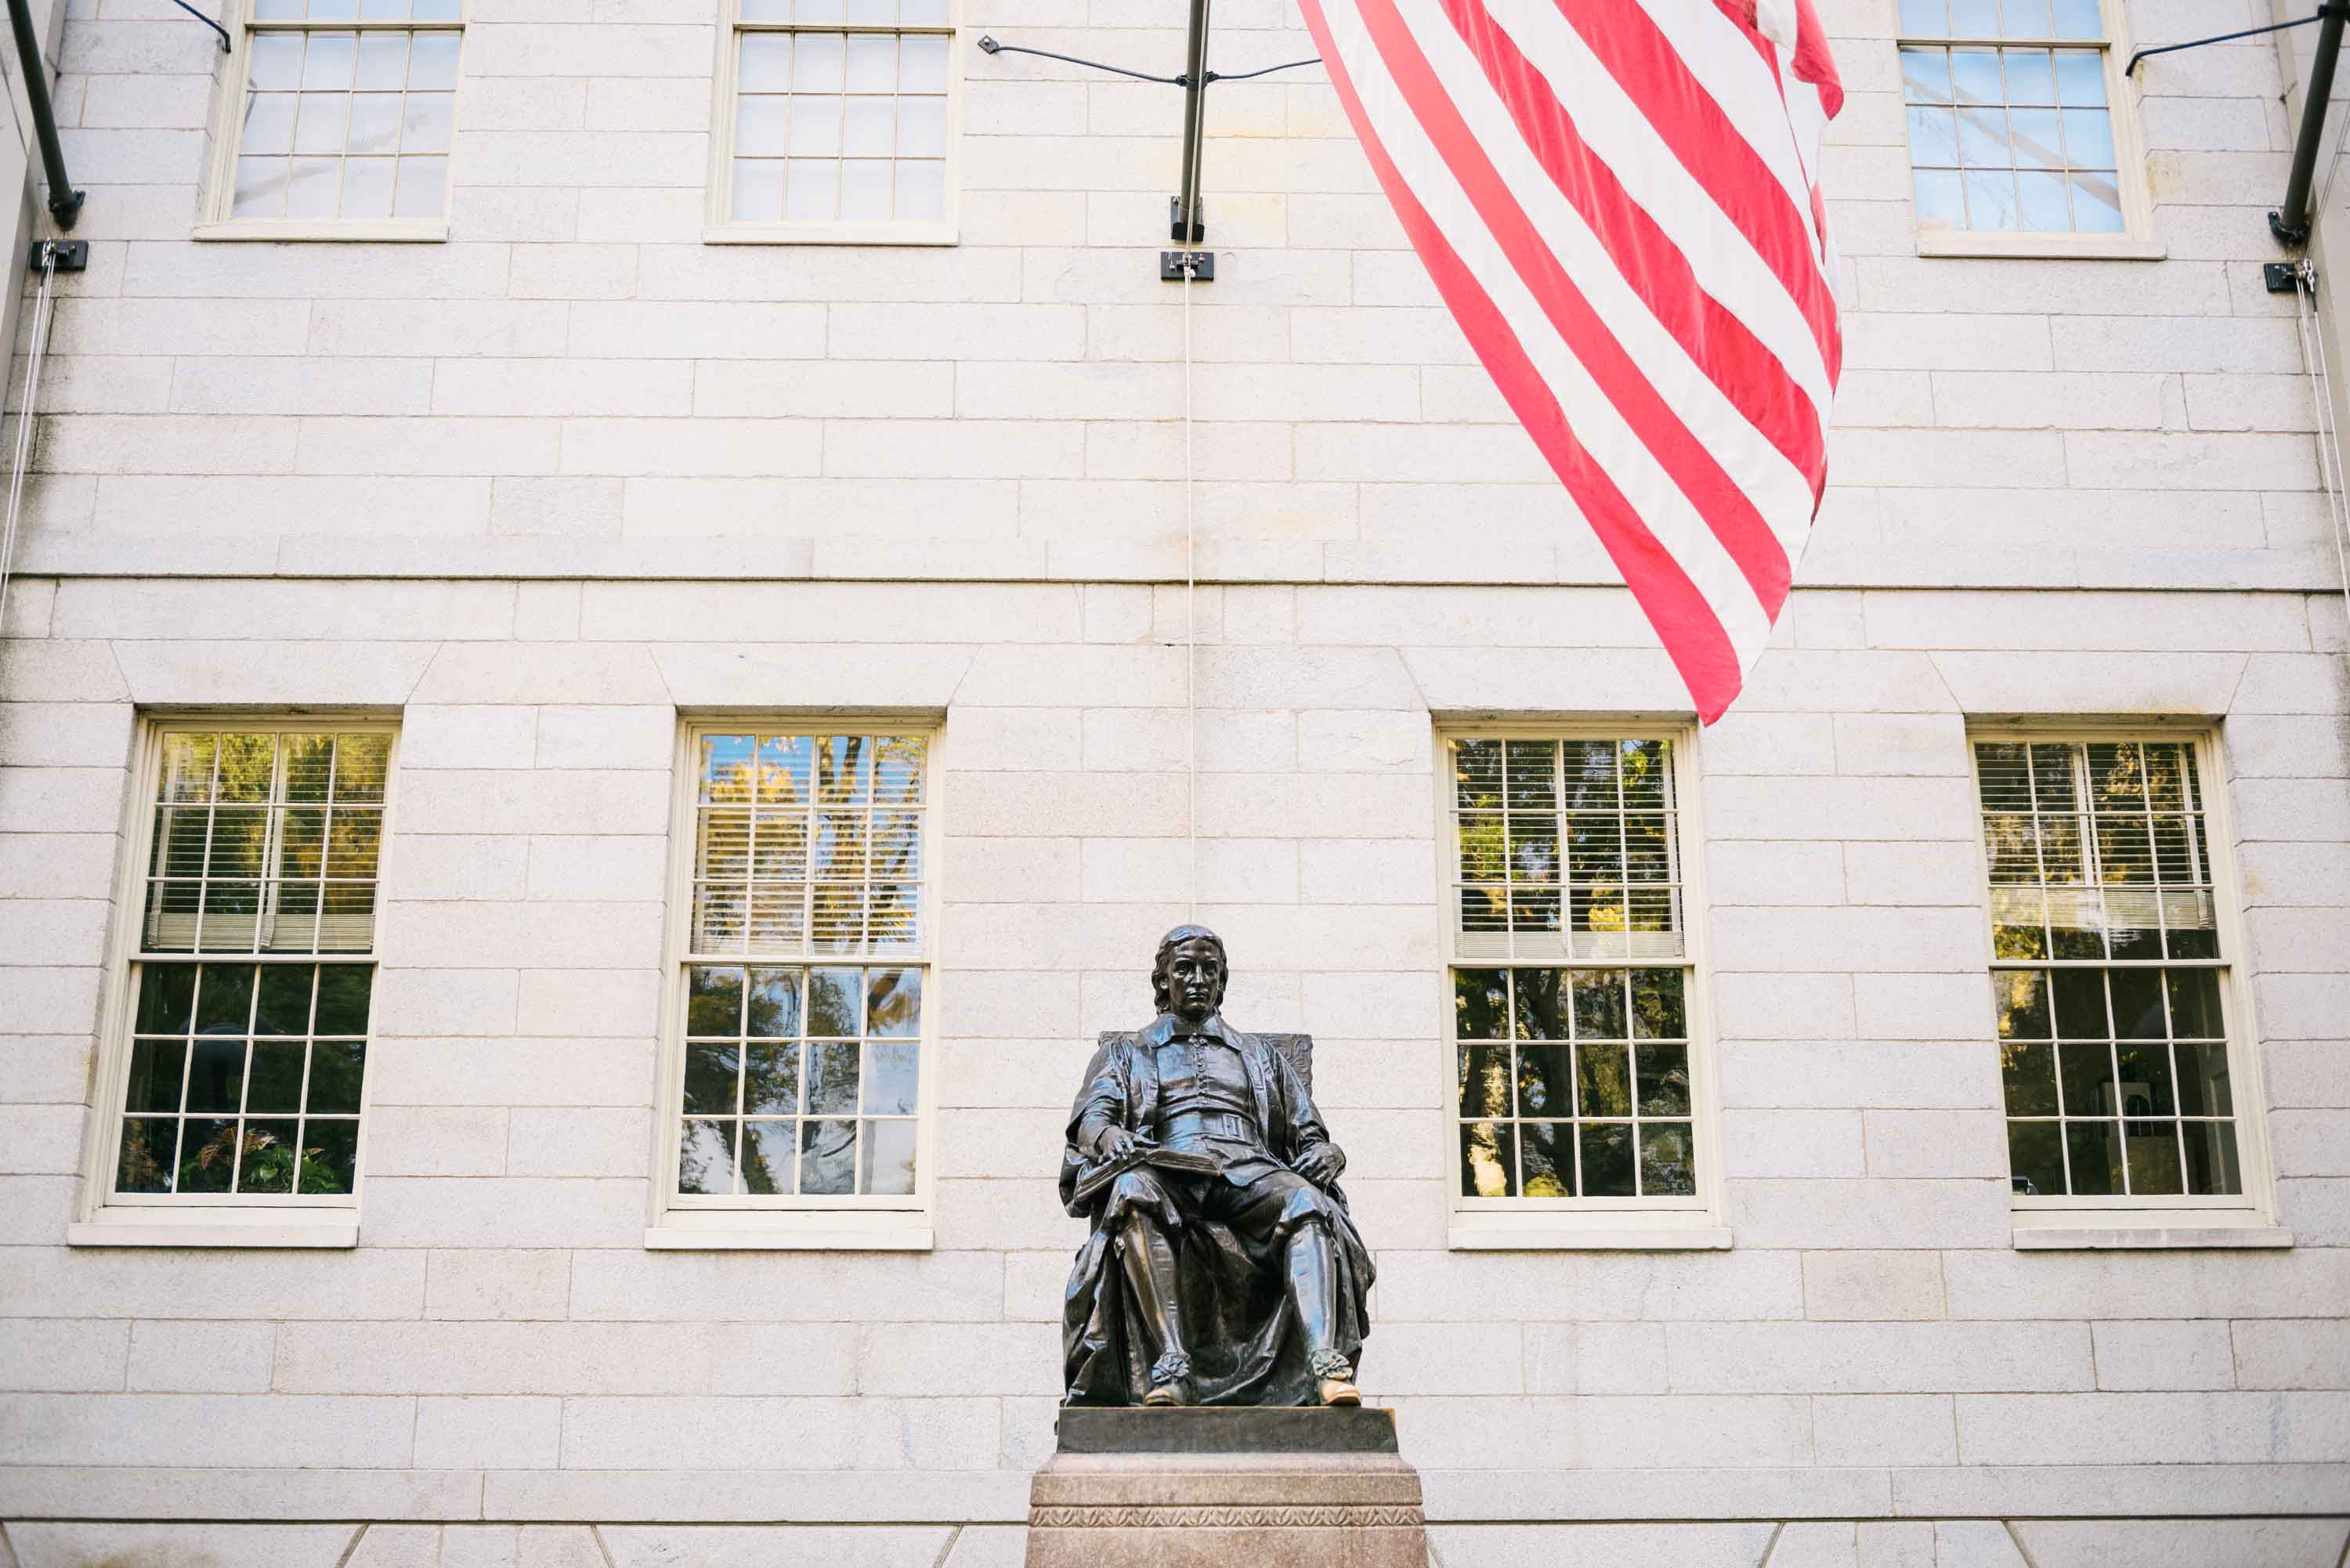 johnharvardstatue-small.jpg